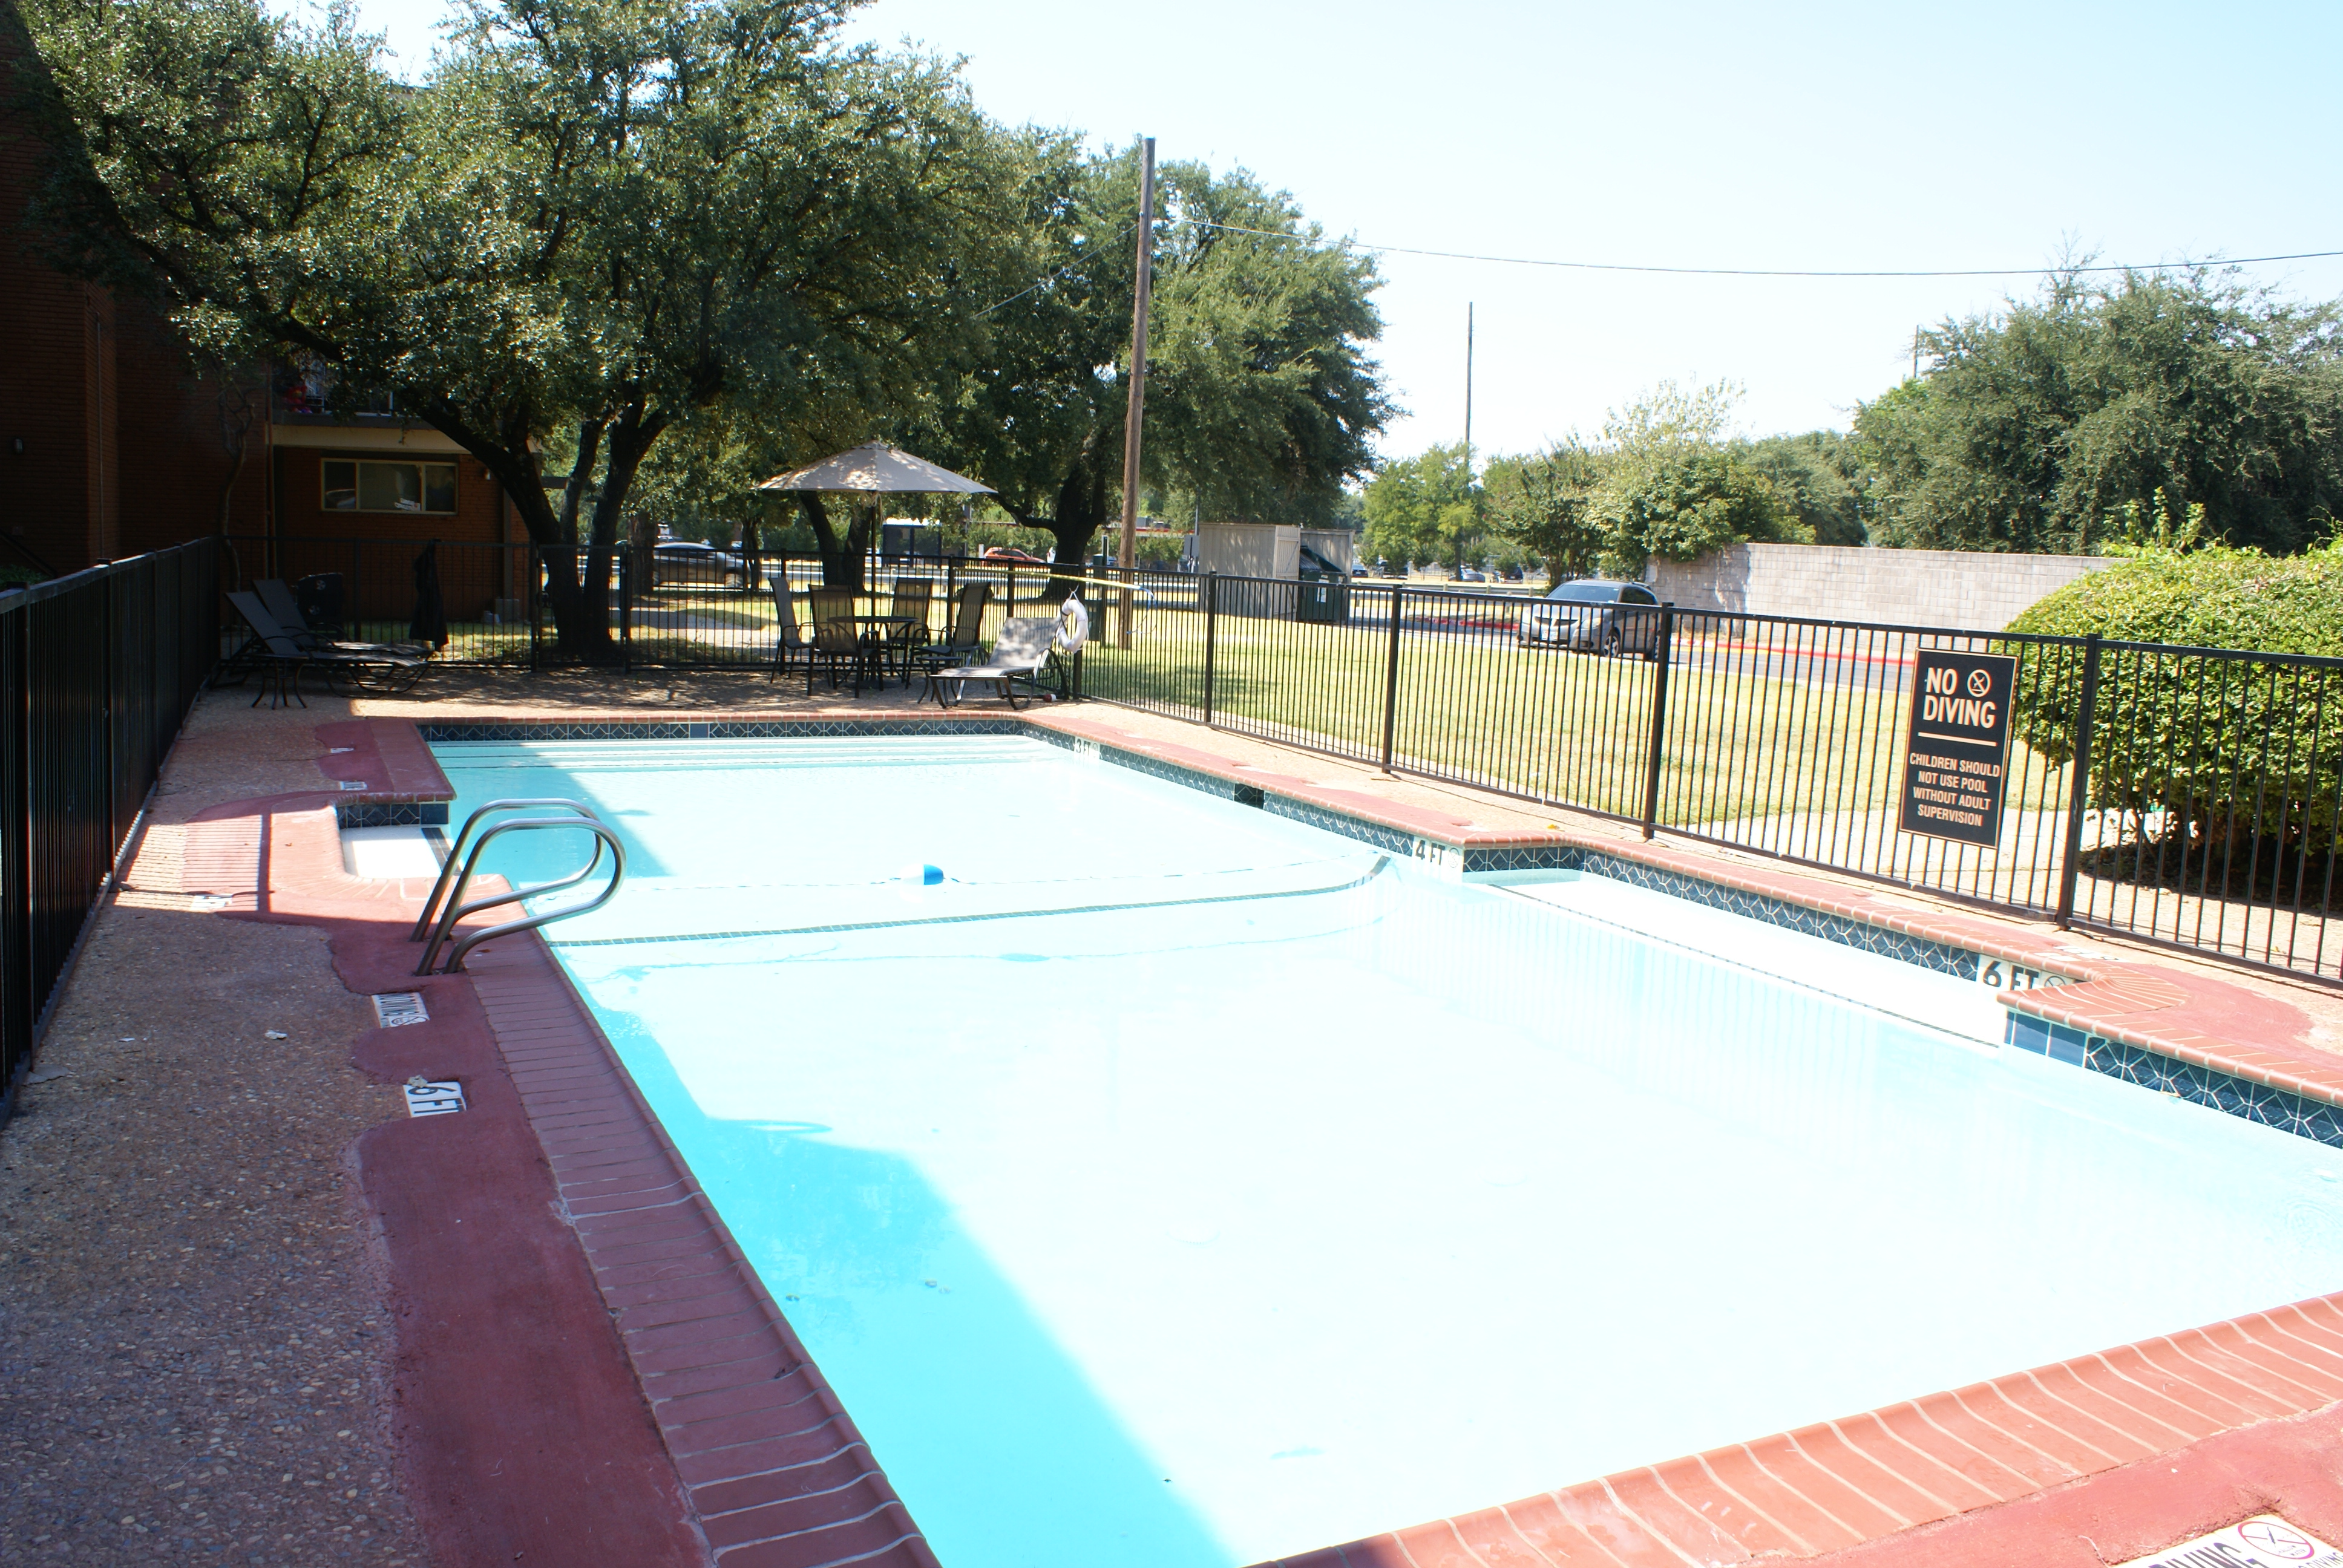 Pool for residents use